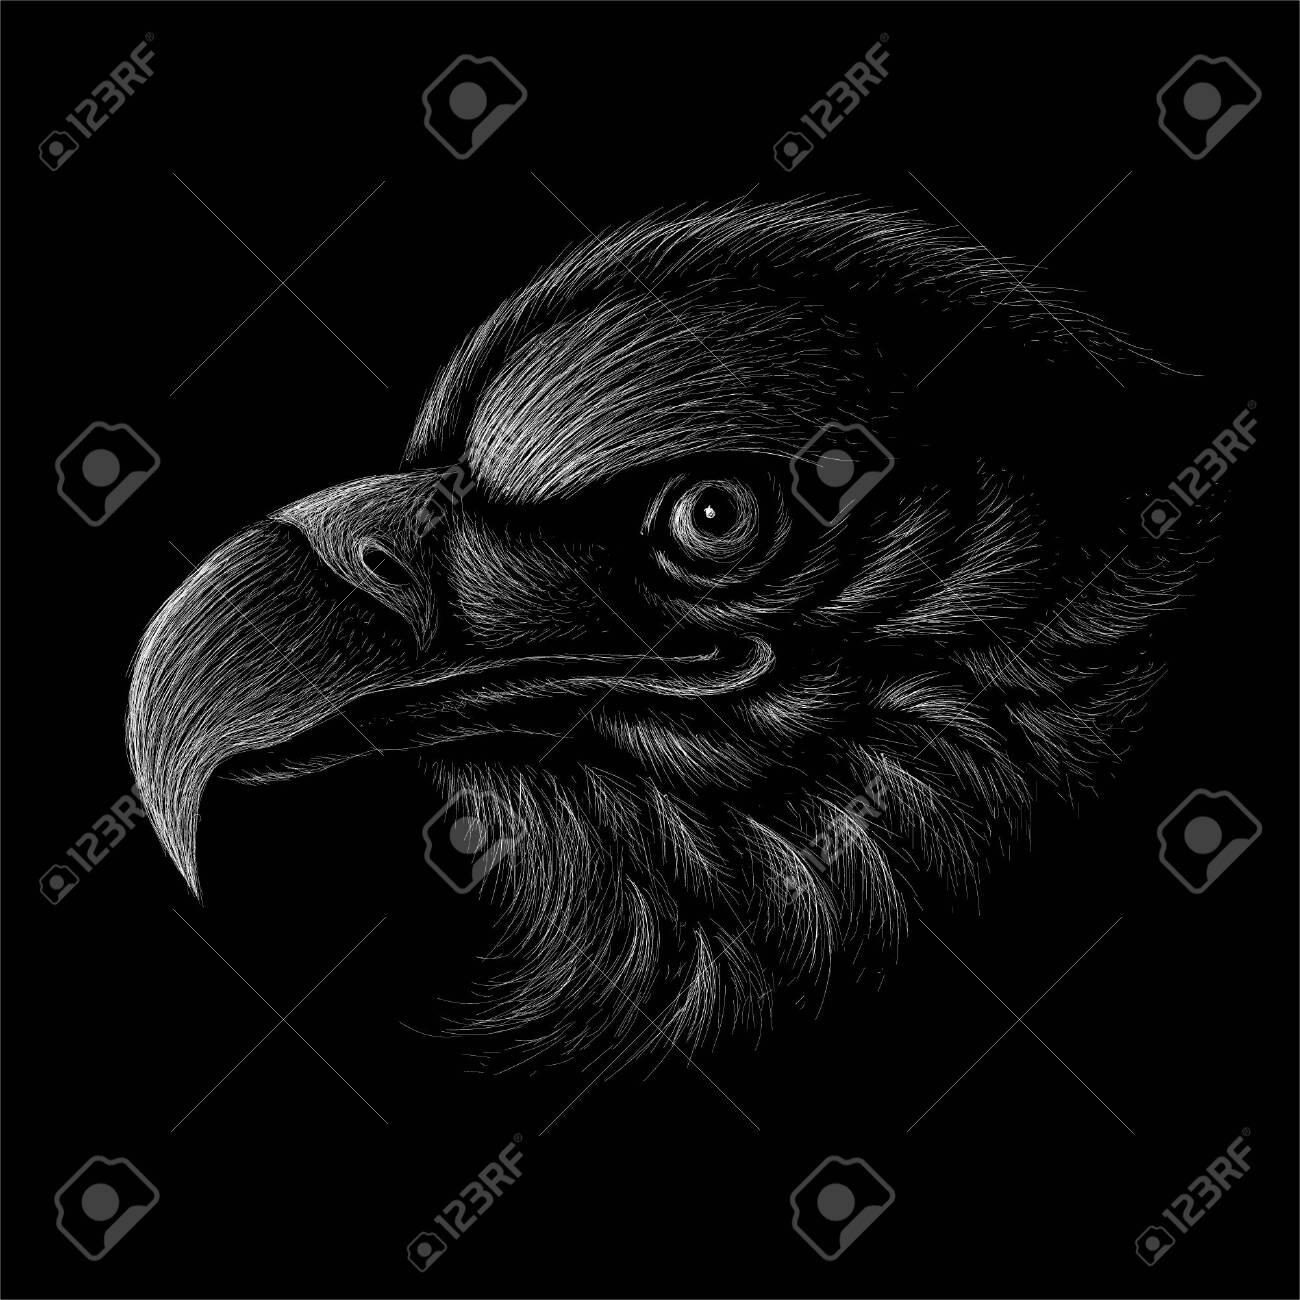 The Vector Eagle For Tattoo Or T Shirt Design Or Outwear Hunting Royalty Free Cliparts Vectors And Stock Illustration Image 147263689